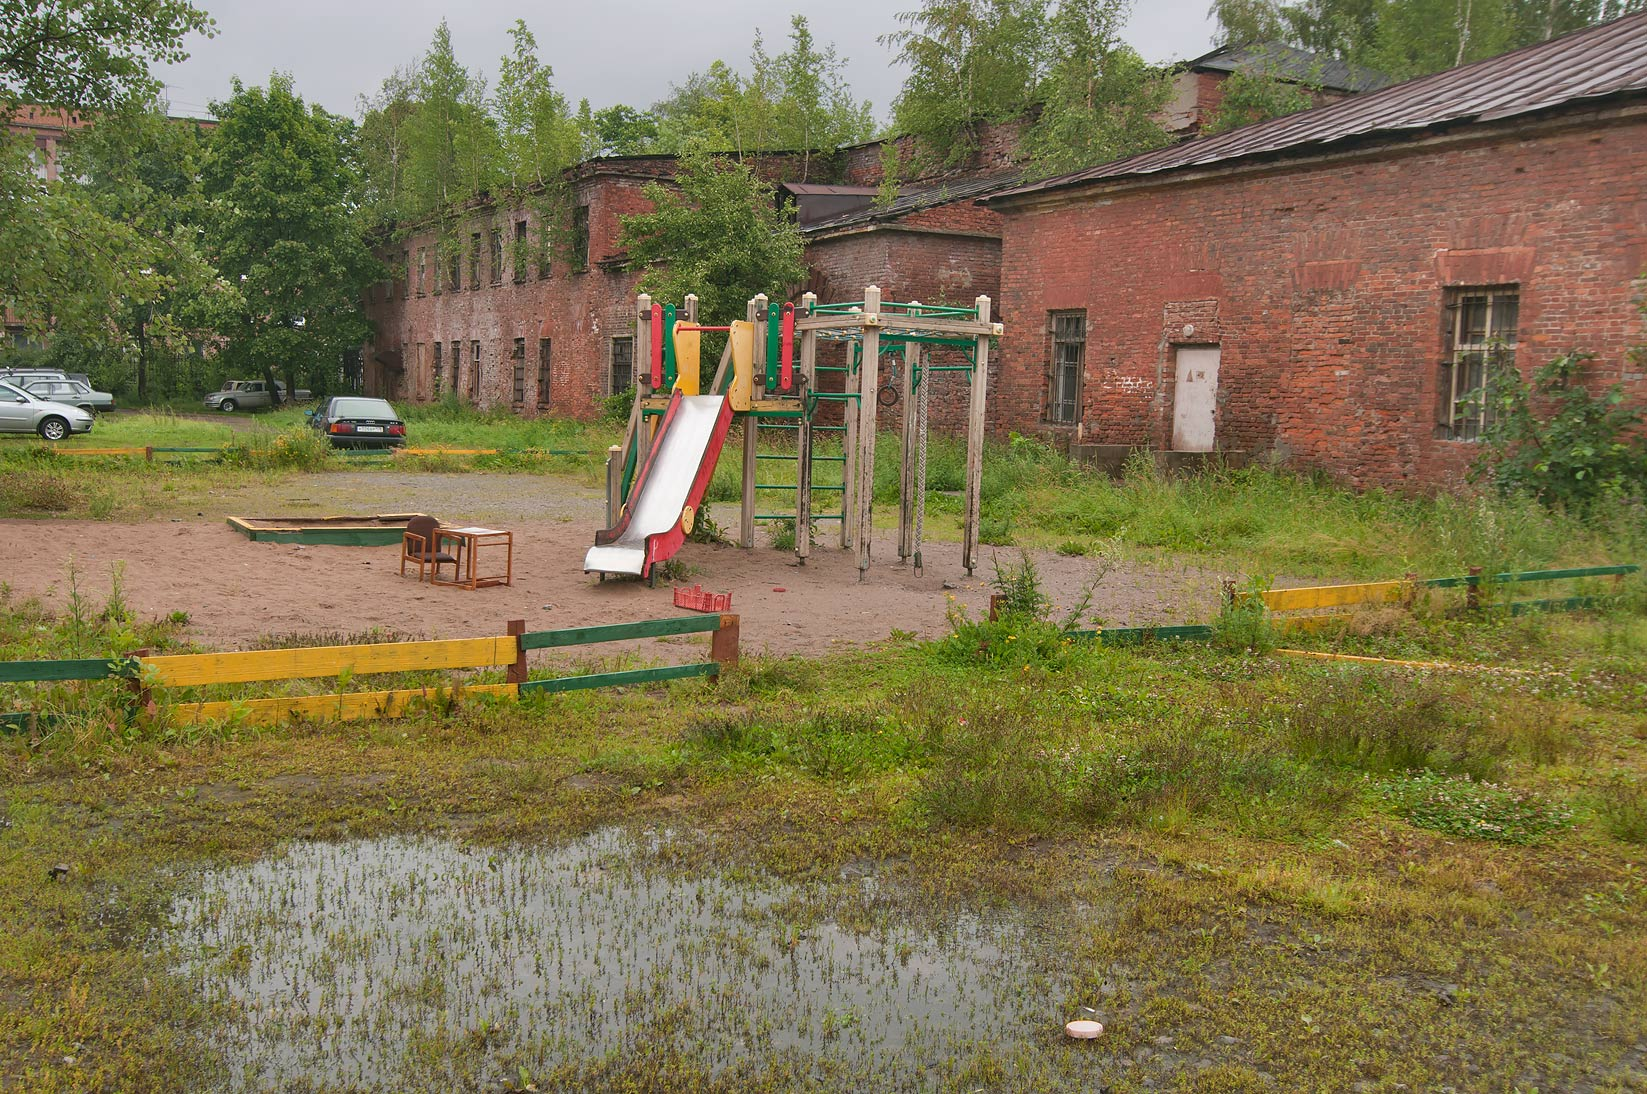 Swampy children's playground near Sovetskaya St. in Kronstadt. St.Petersburg, Russia